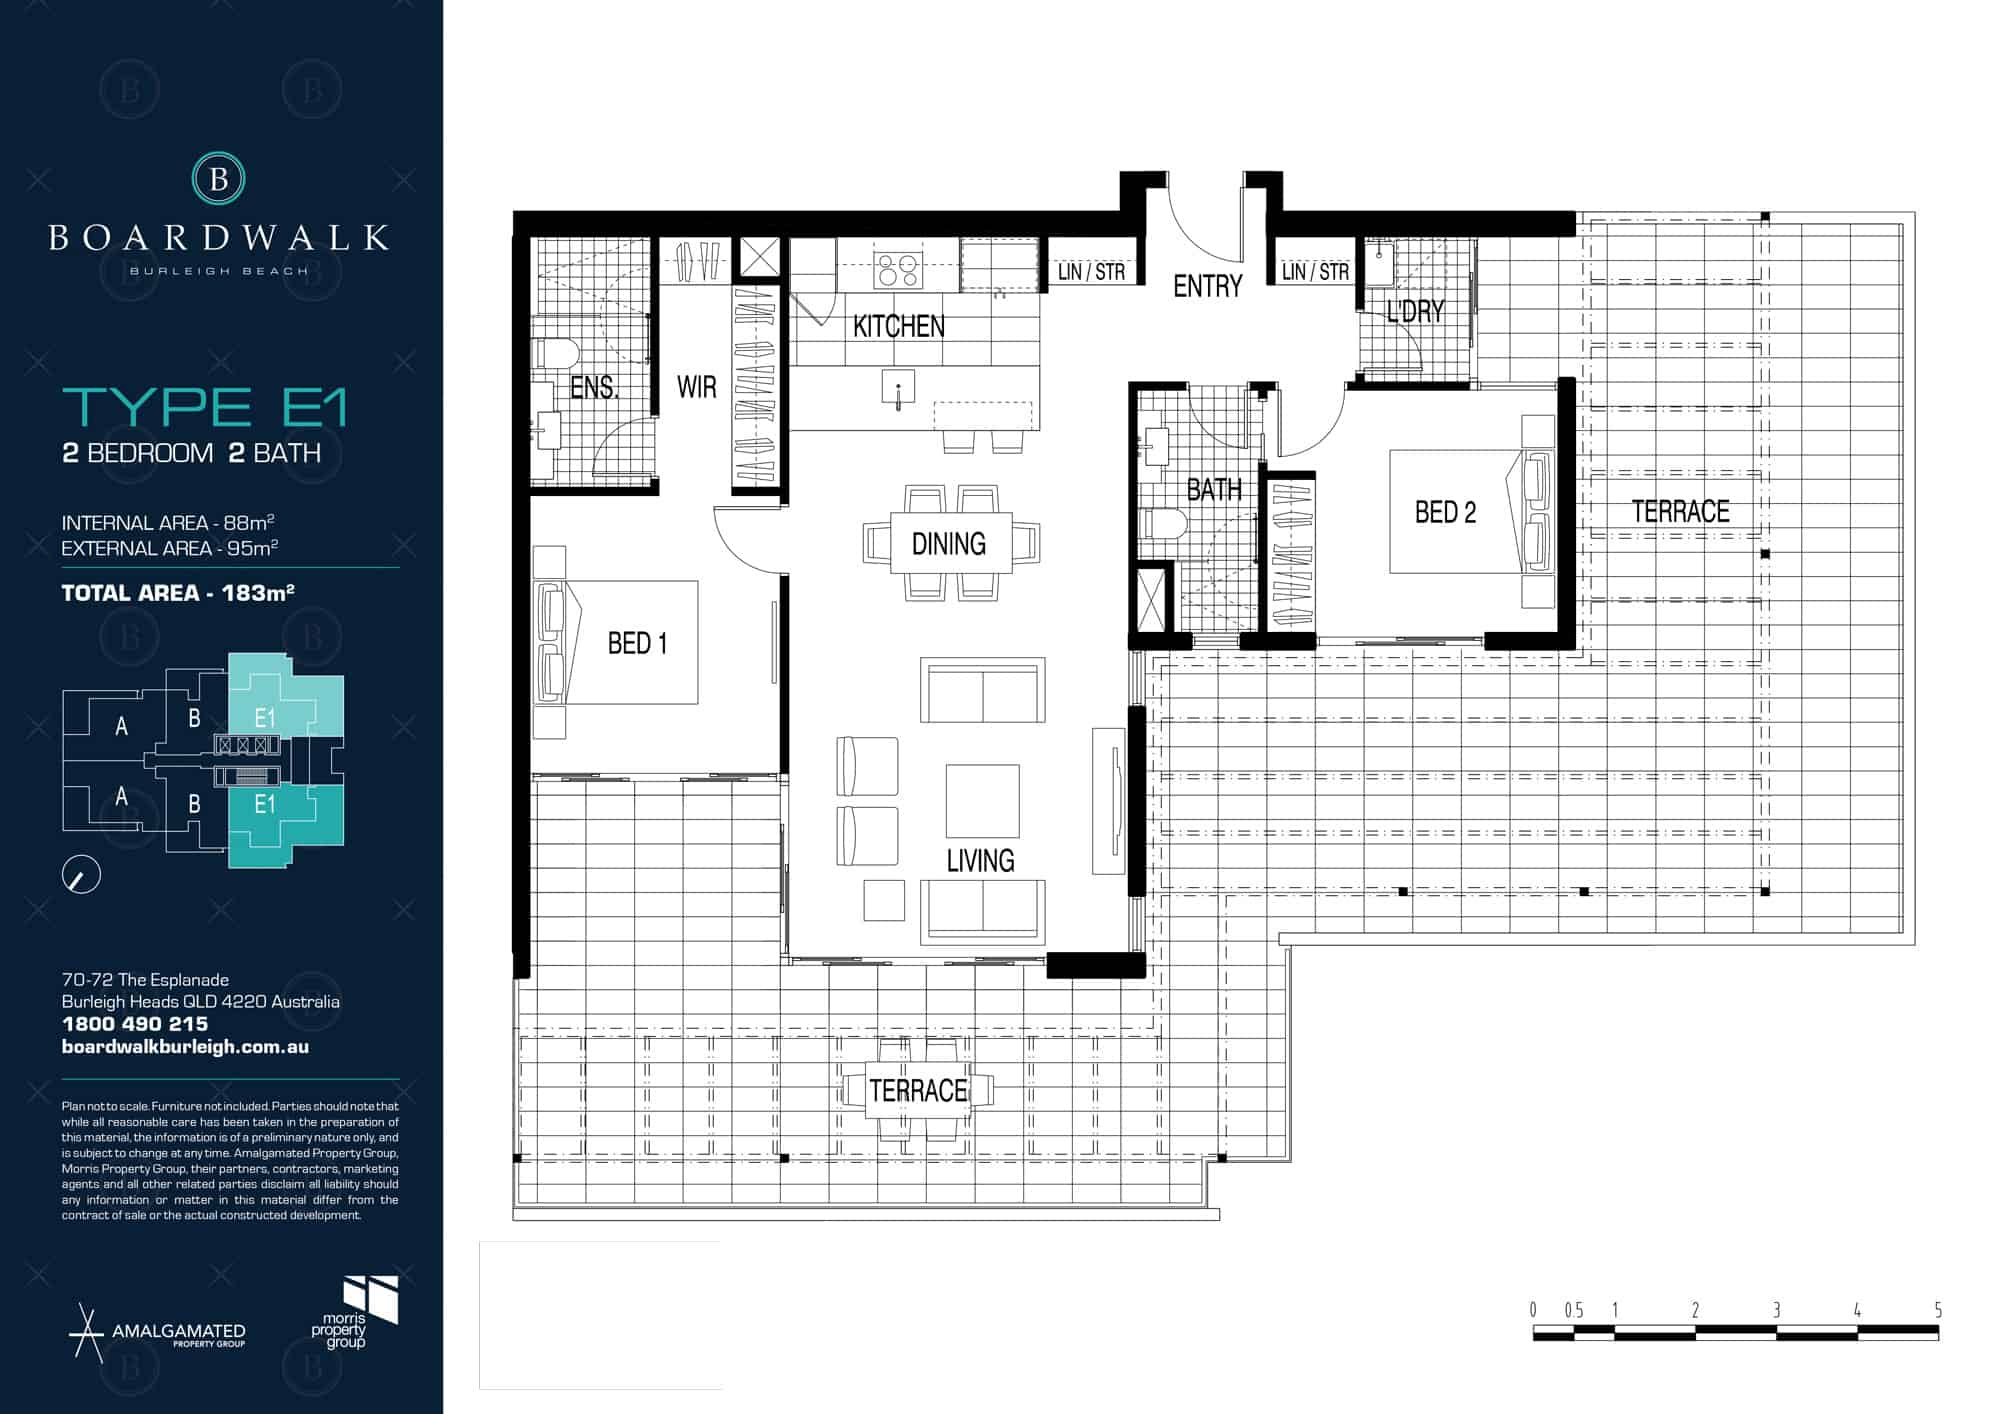 Broadwalk floor plan E1